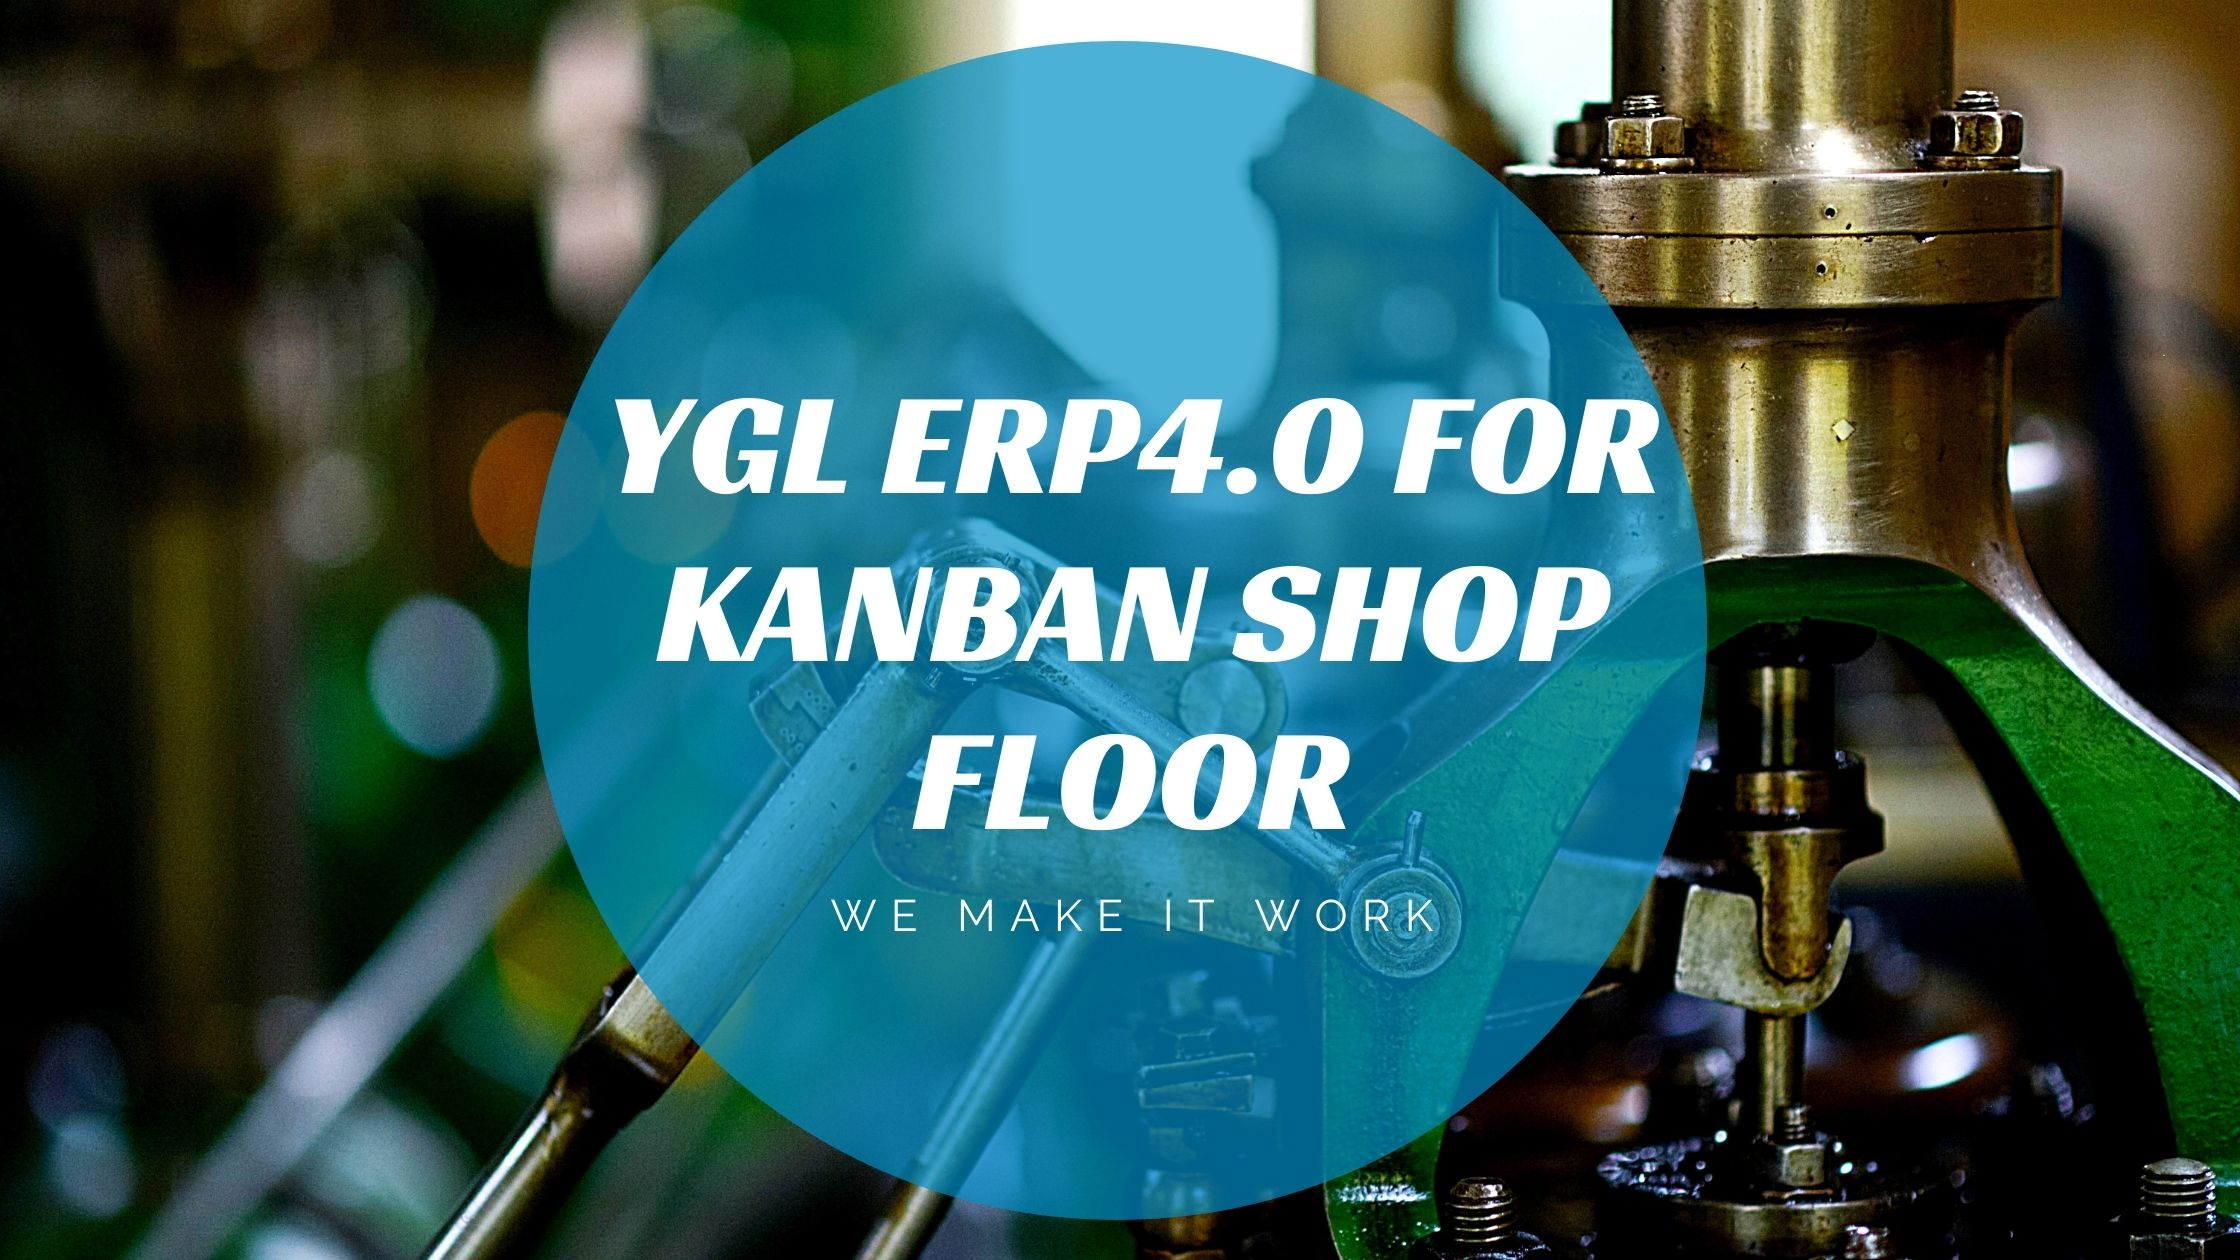 KANBAN AND ERP to improve your lean manufacturing